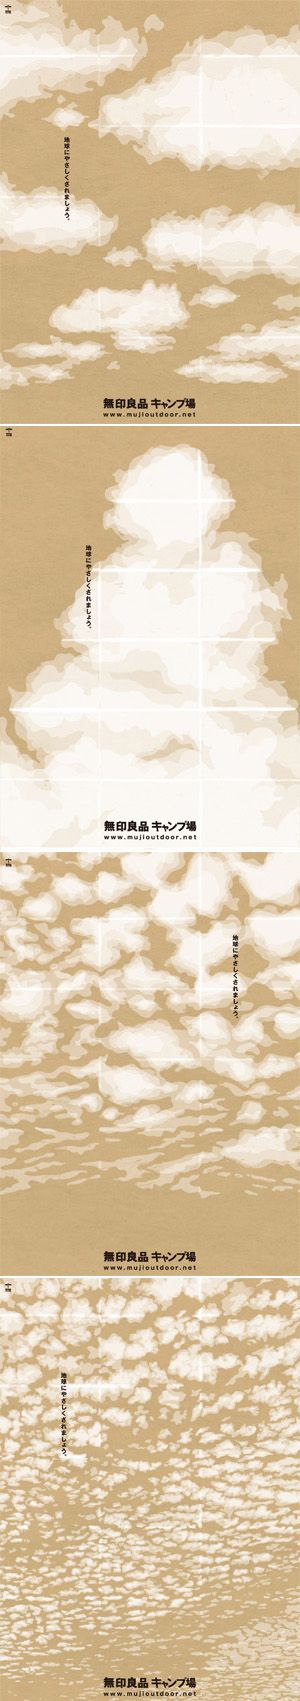 無印良品キャンプ場, 2009: by Norito Shinmura for Muji outdoor, 2009